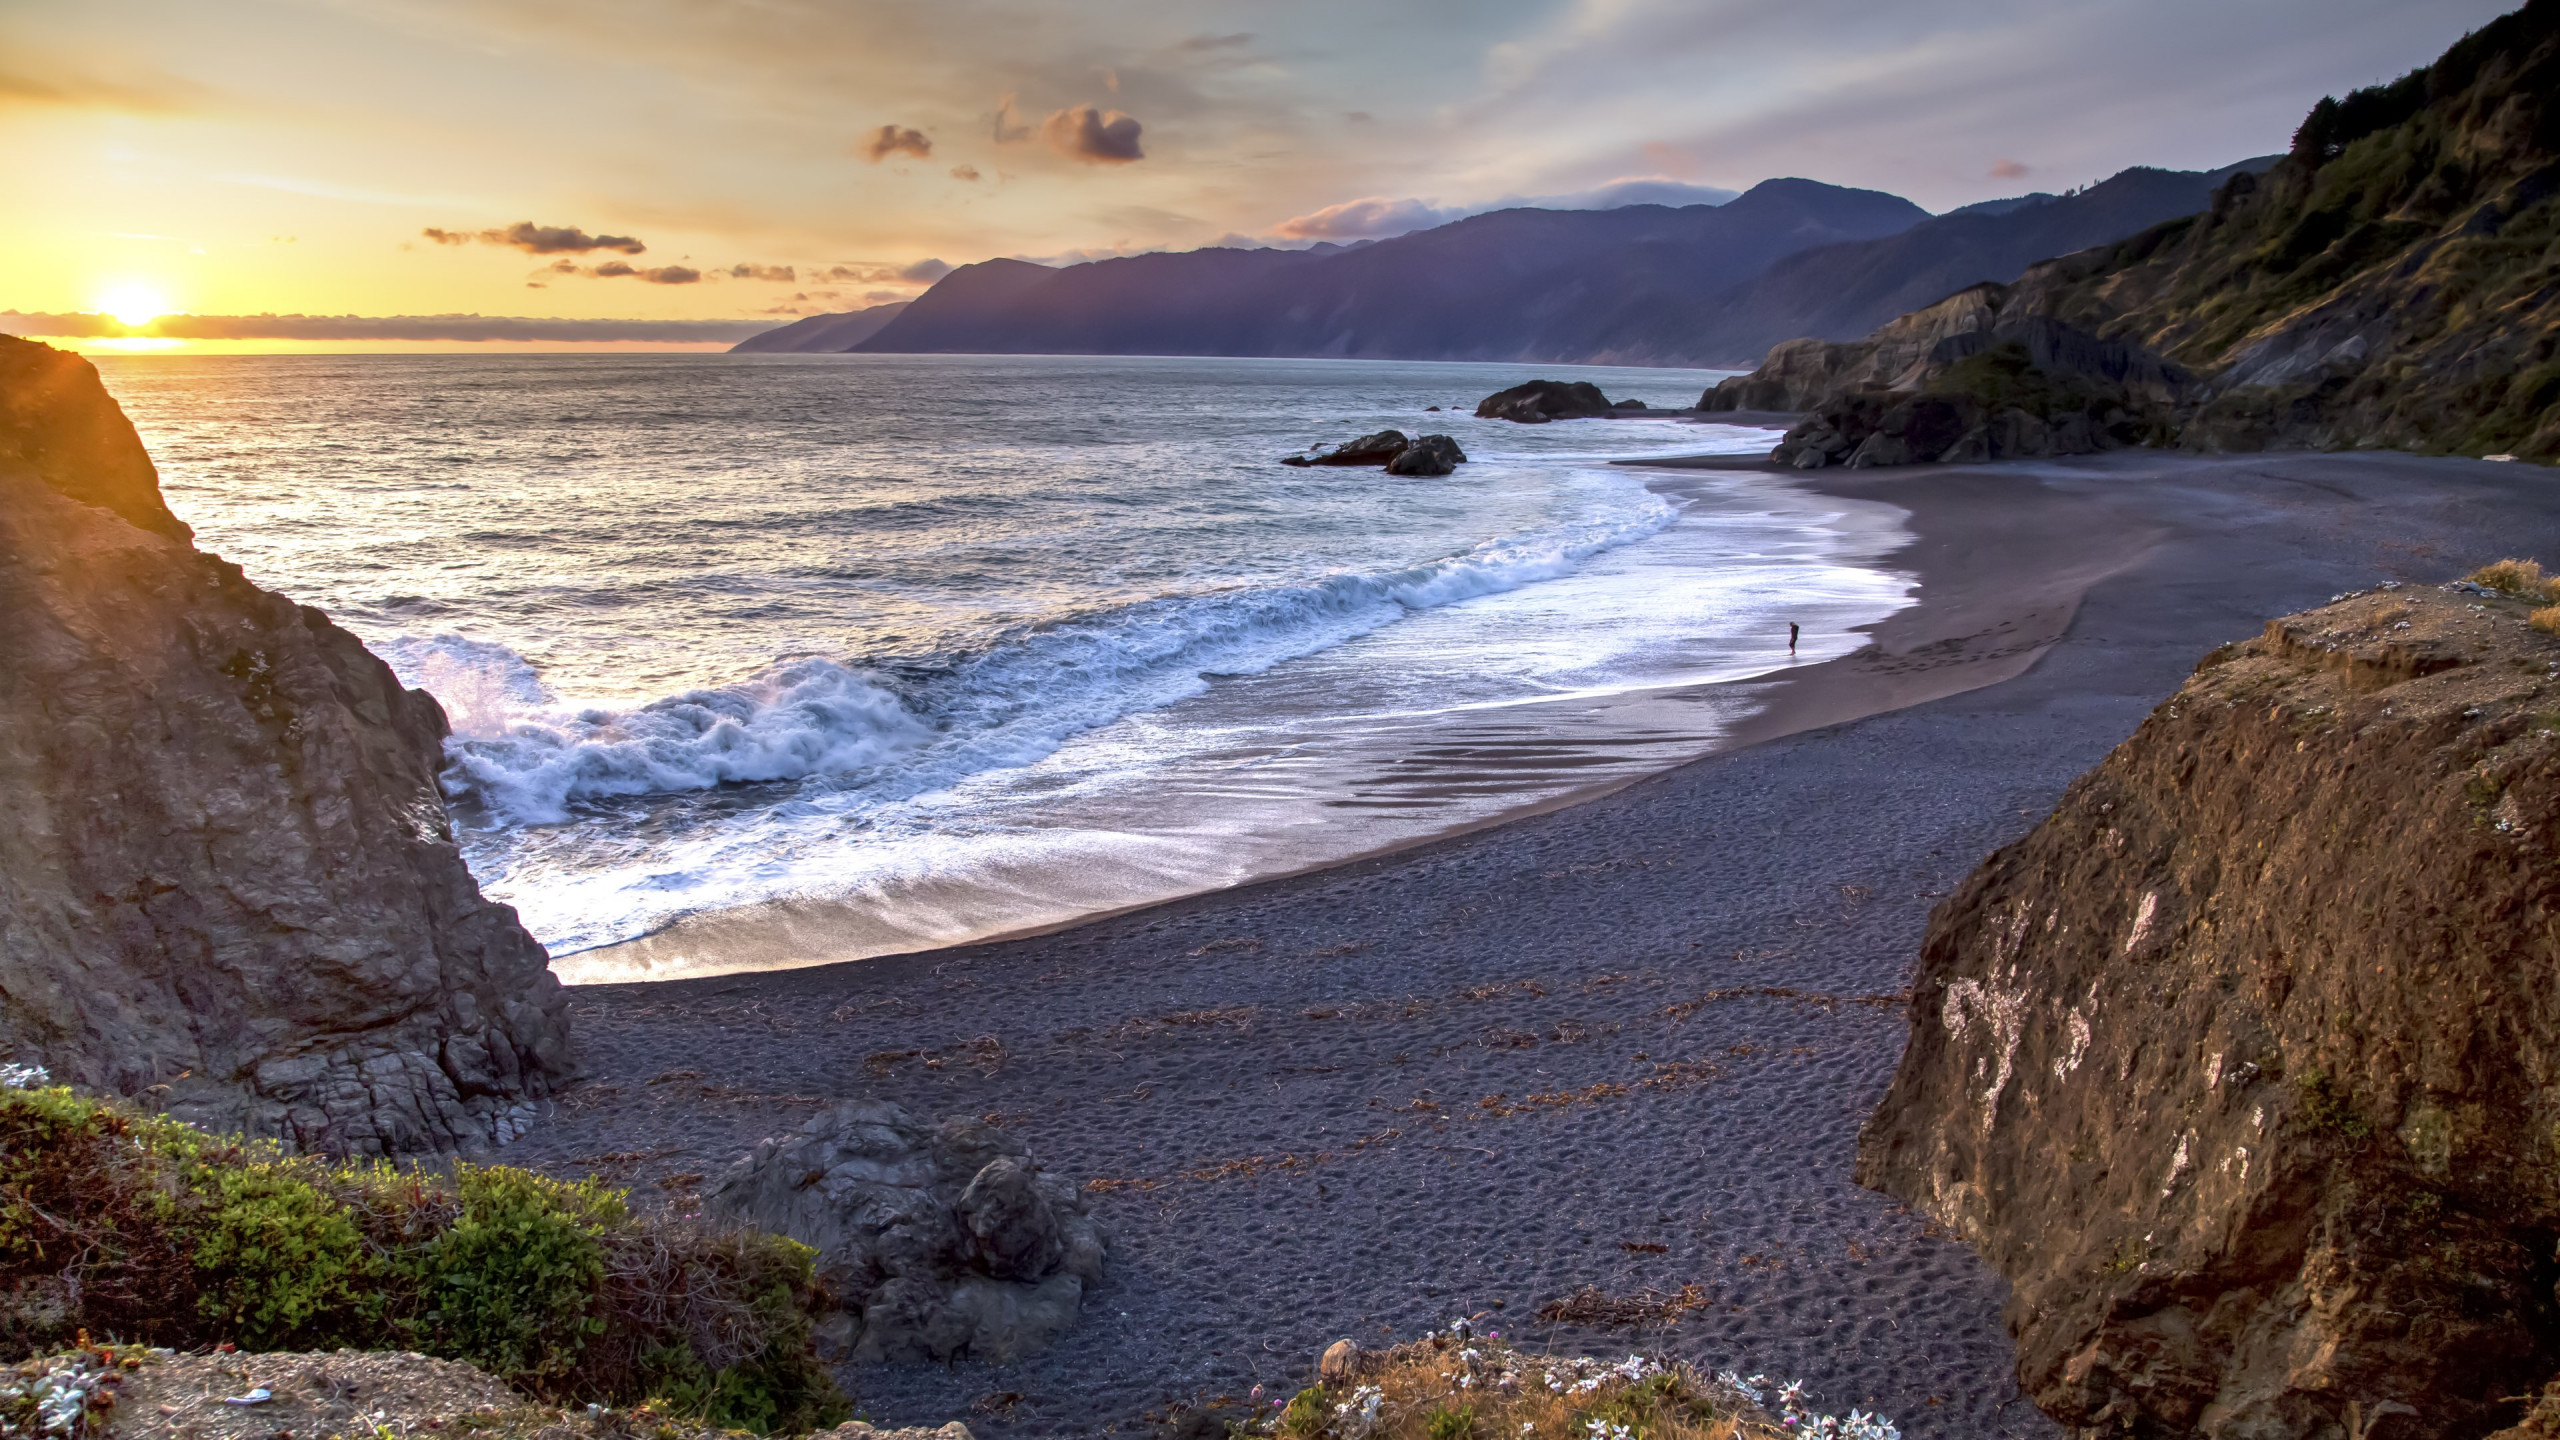 View from Humboldt Coast wallpaper 2560x1440